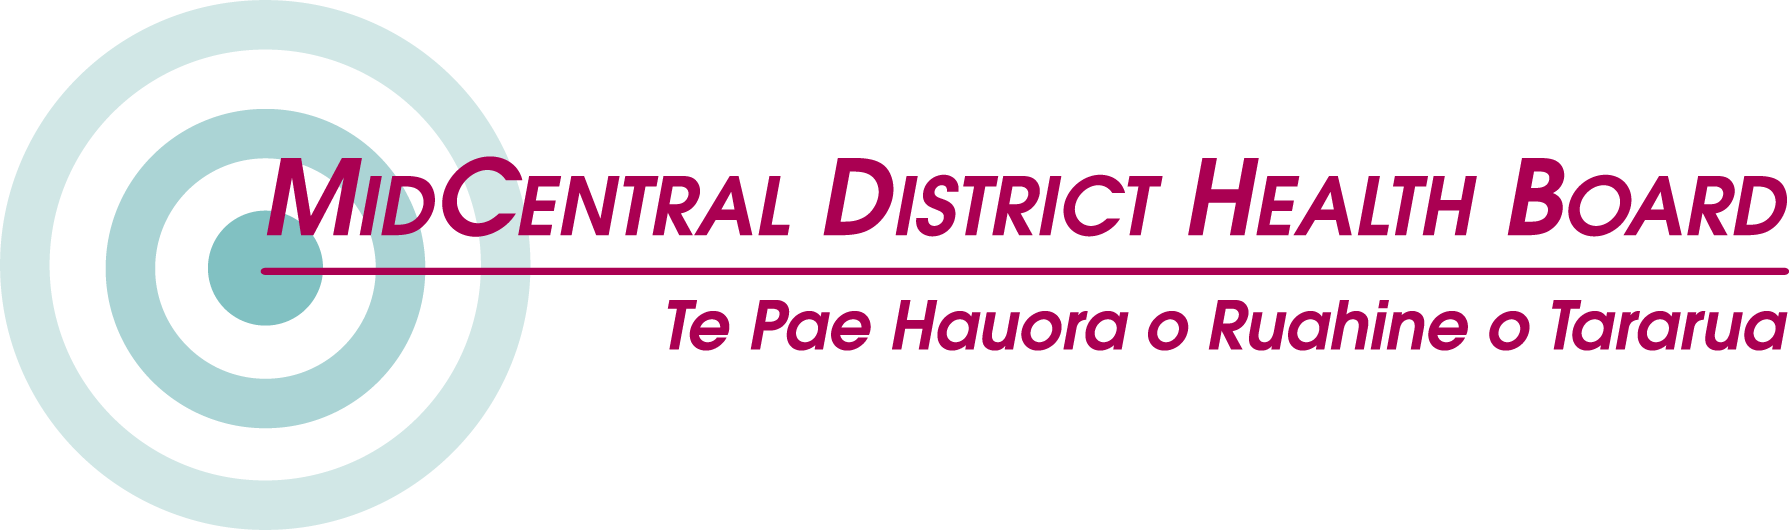 MidCentral District Health Board logo